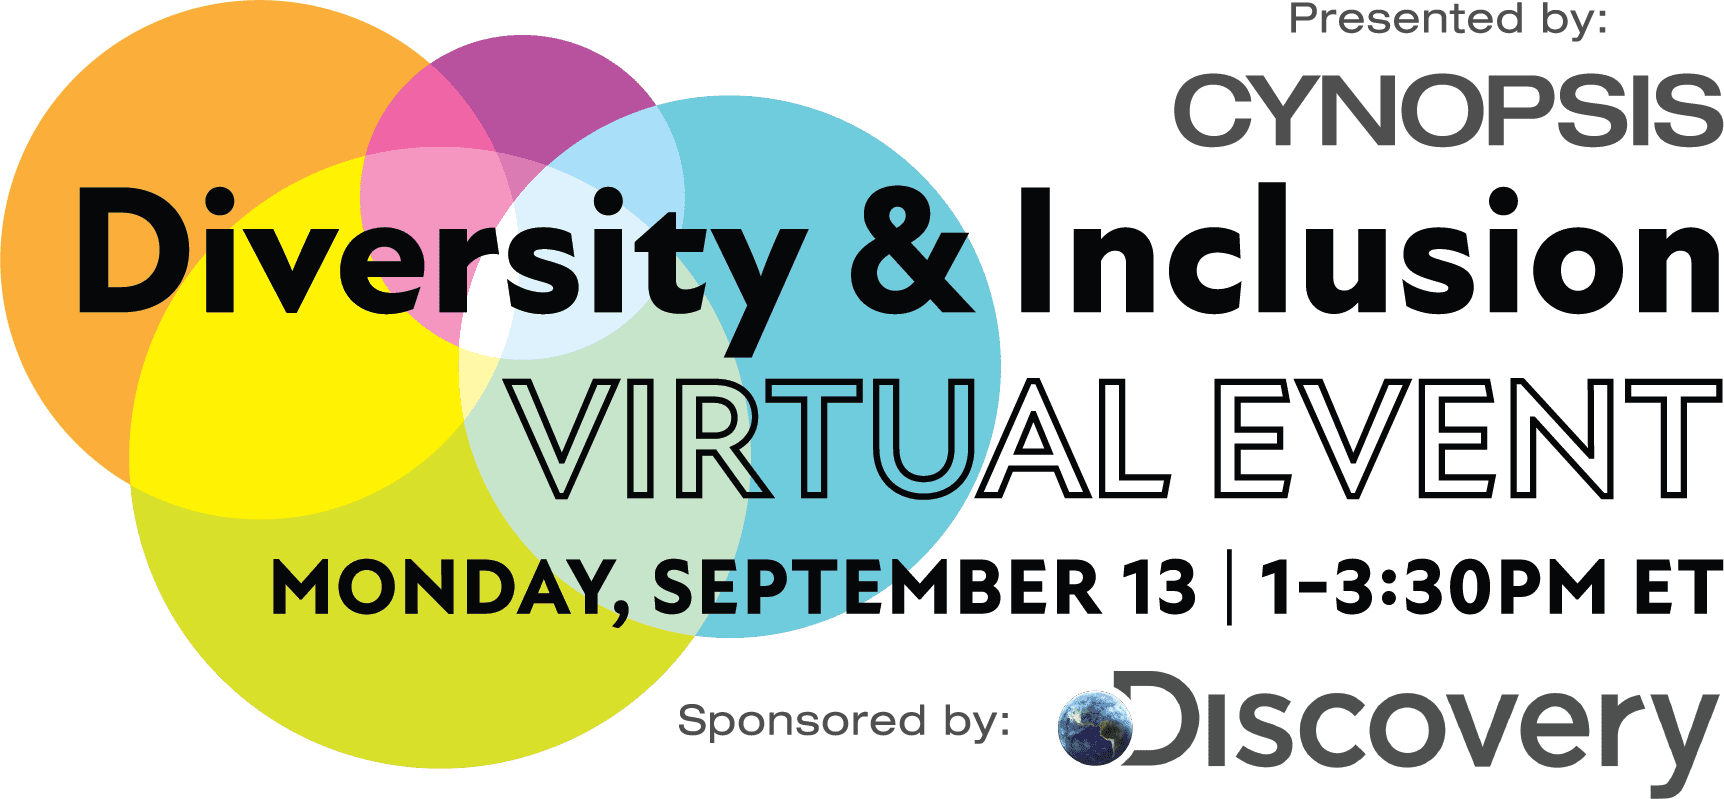 Cynopsis + Discovery Diversity & Inclusion Virtual Event on September 13